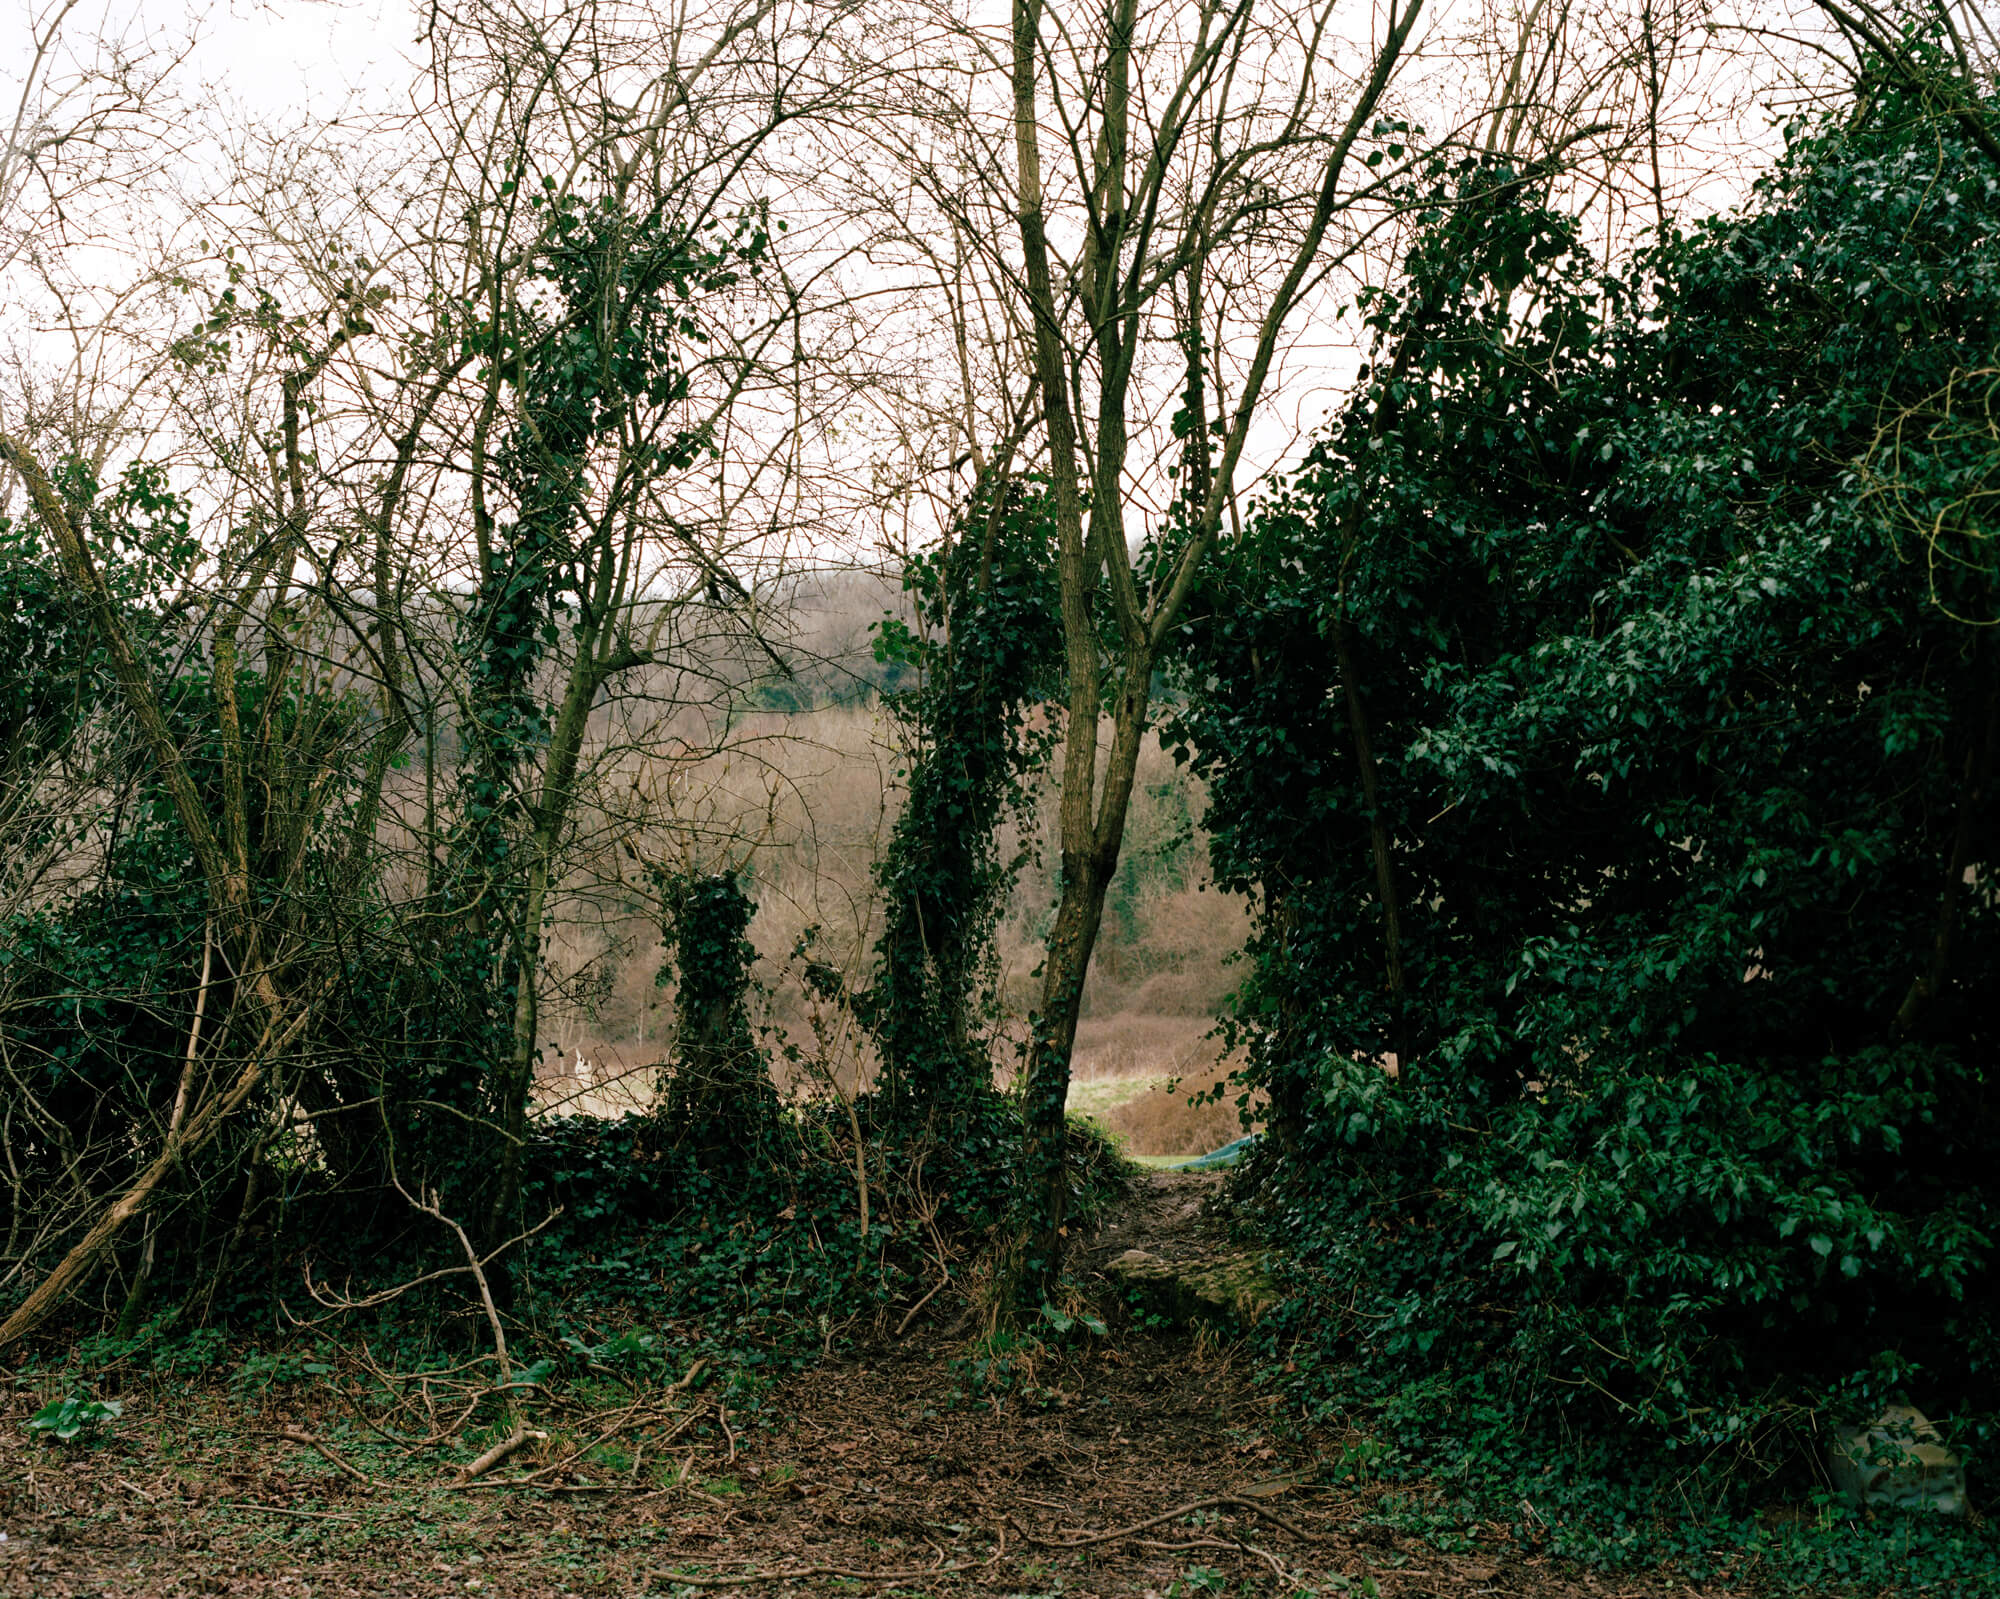 green trees in the woodland next to collapsed tree